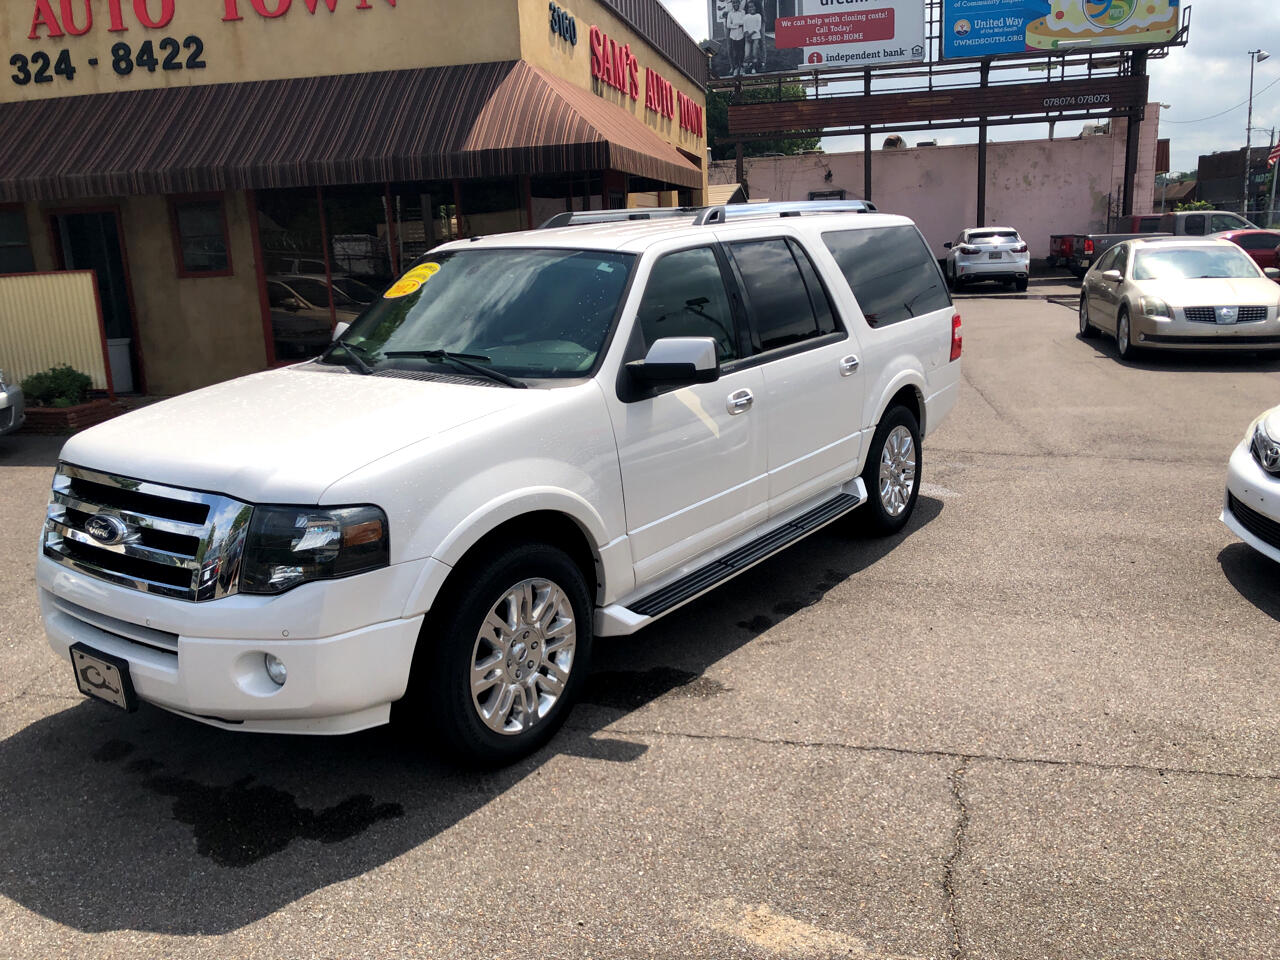 2012 Ford Expedition EL 2WD 4dr Limited